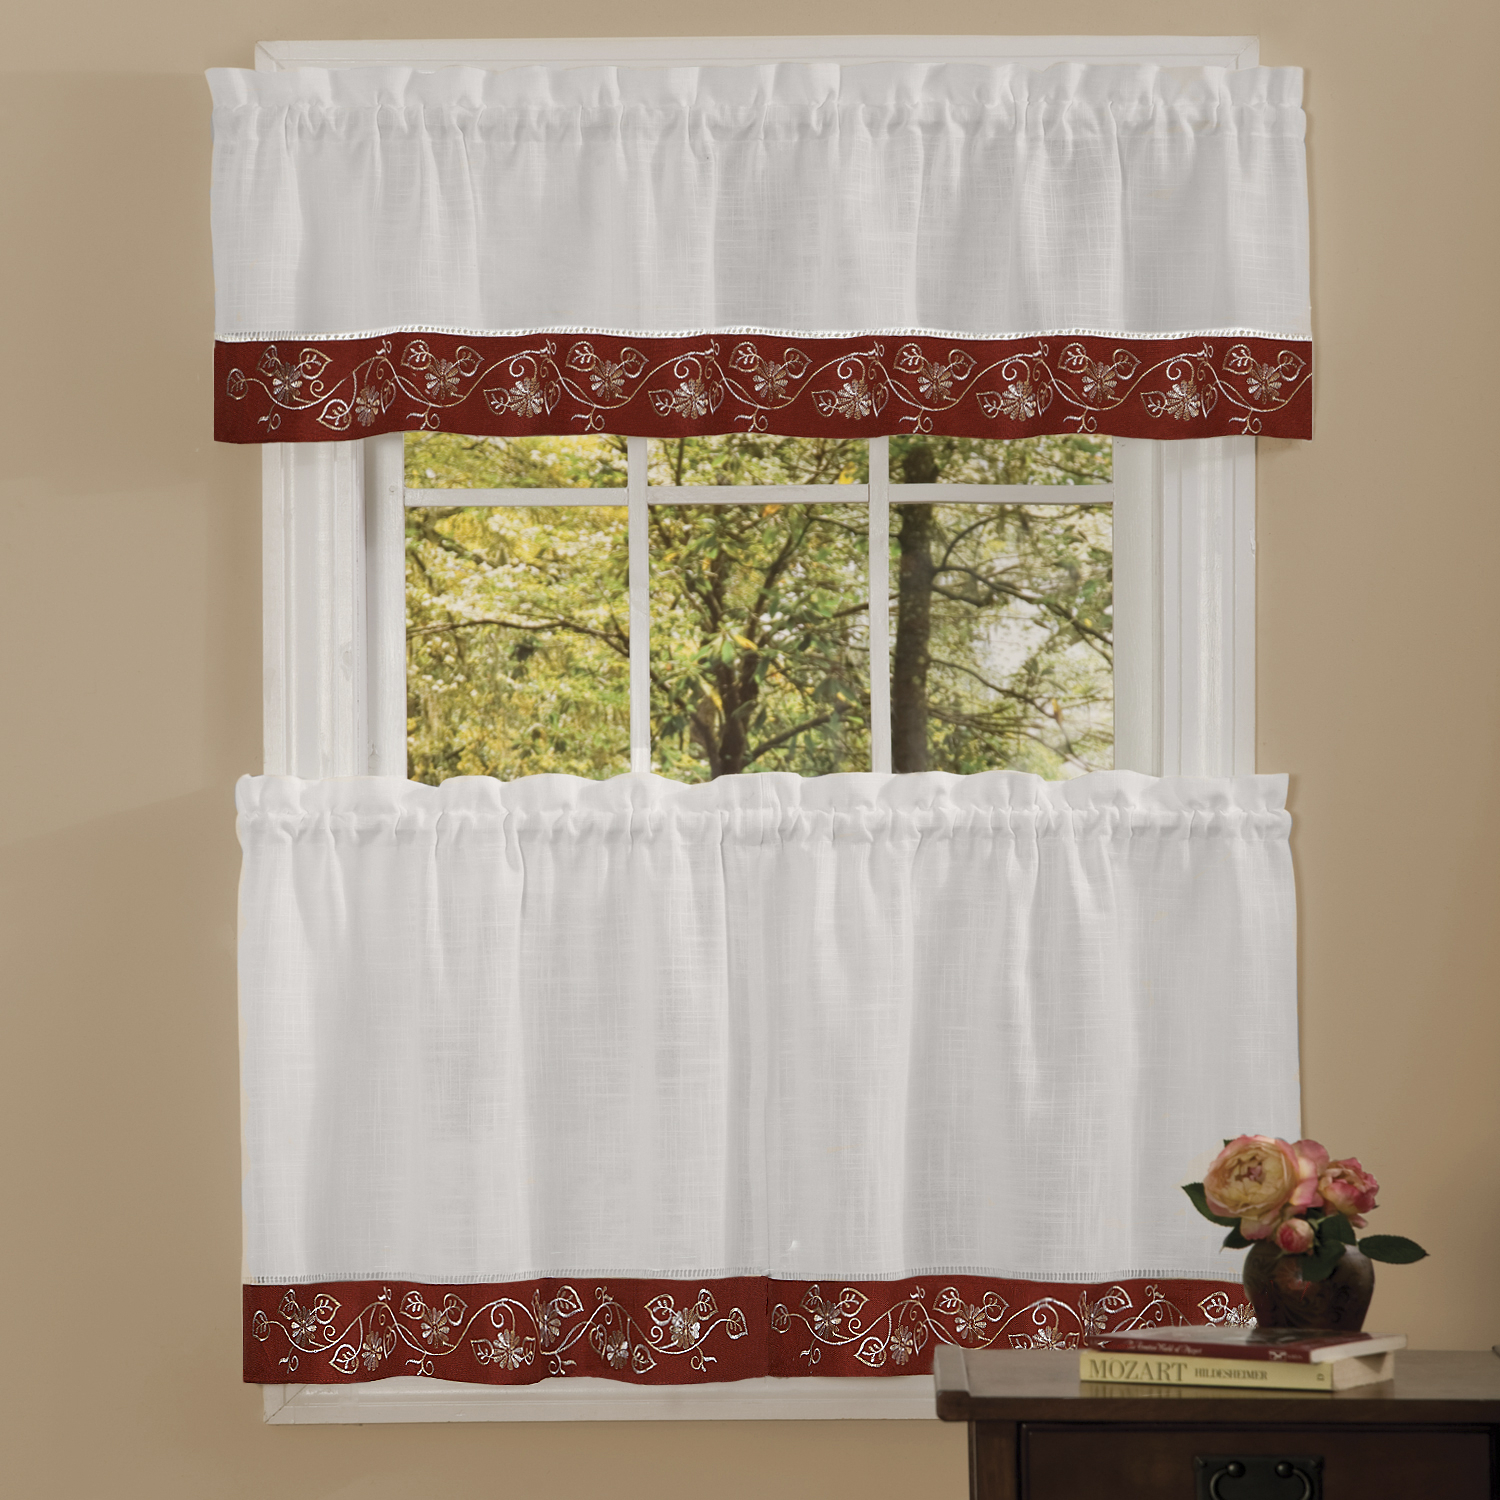 Details About Oakwood Linen Style Kitchen Window Curtains Tiers Or Valance Burgundy In Oakwood Linen Style Decorative Curtain Tier Sets (View 3 of 20)